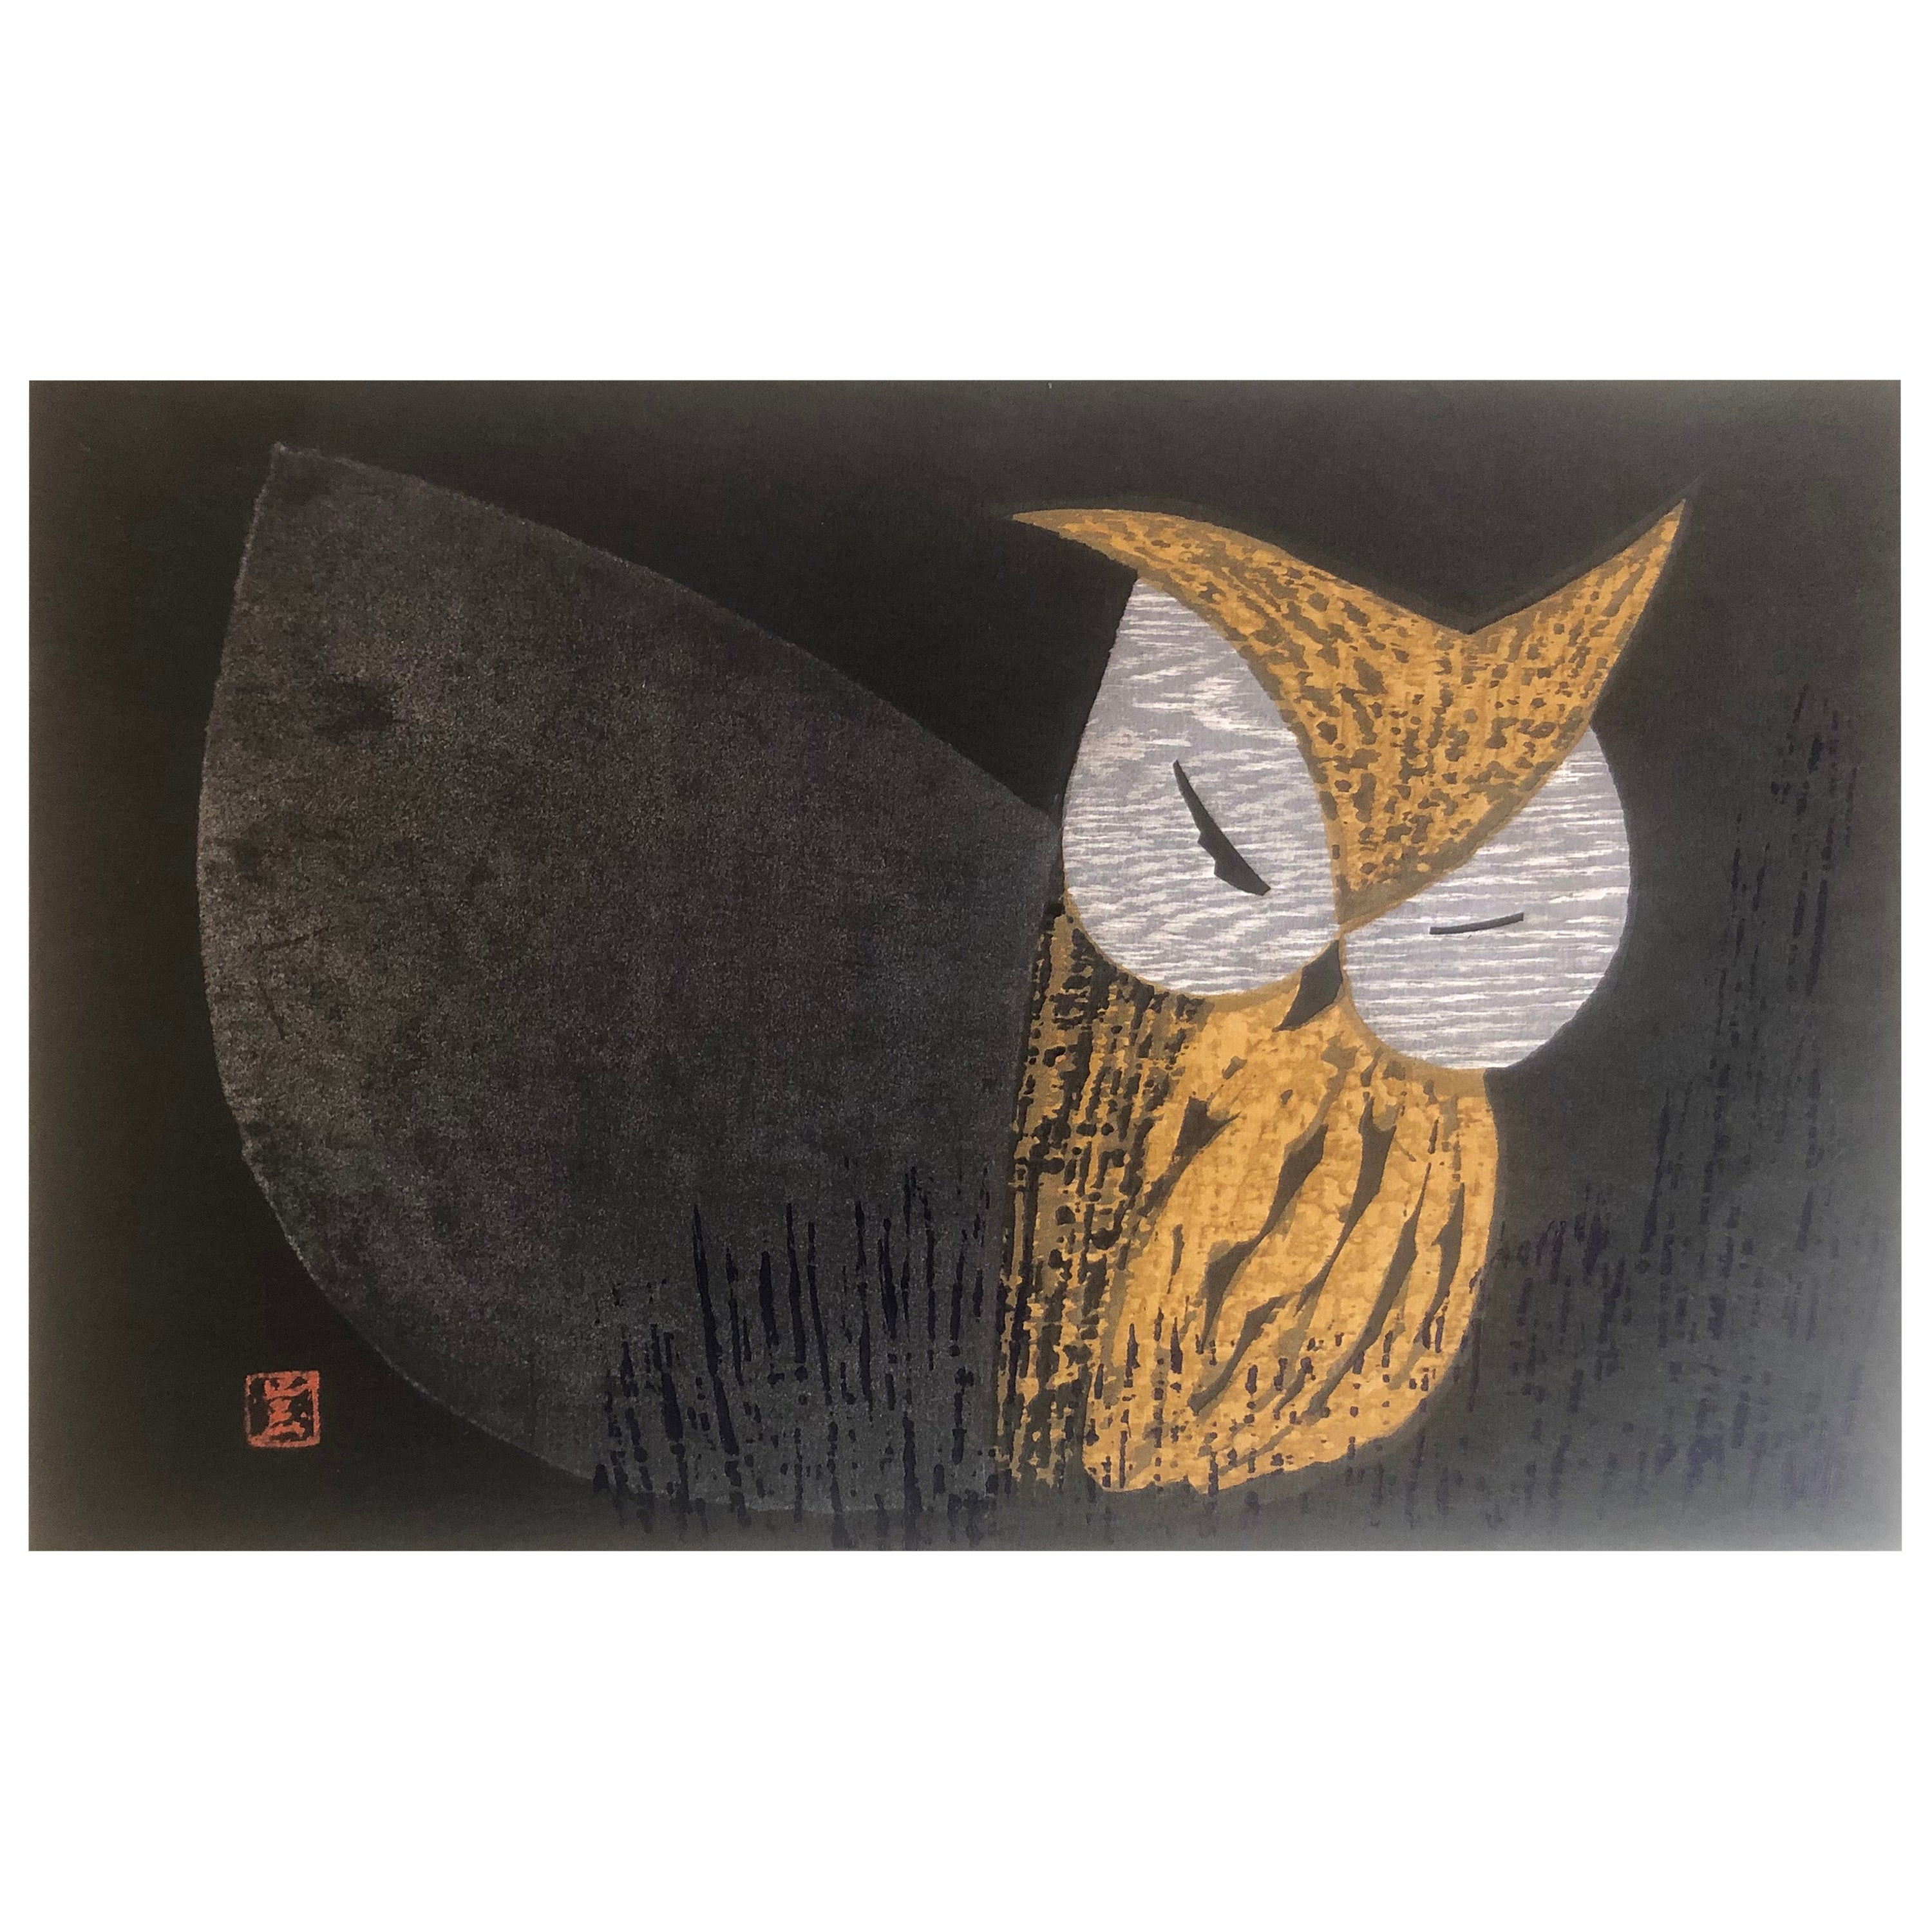 "Mid-Century Wood Block Owl Print Moonlight Night"" by Kaoru Kawano"